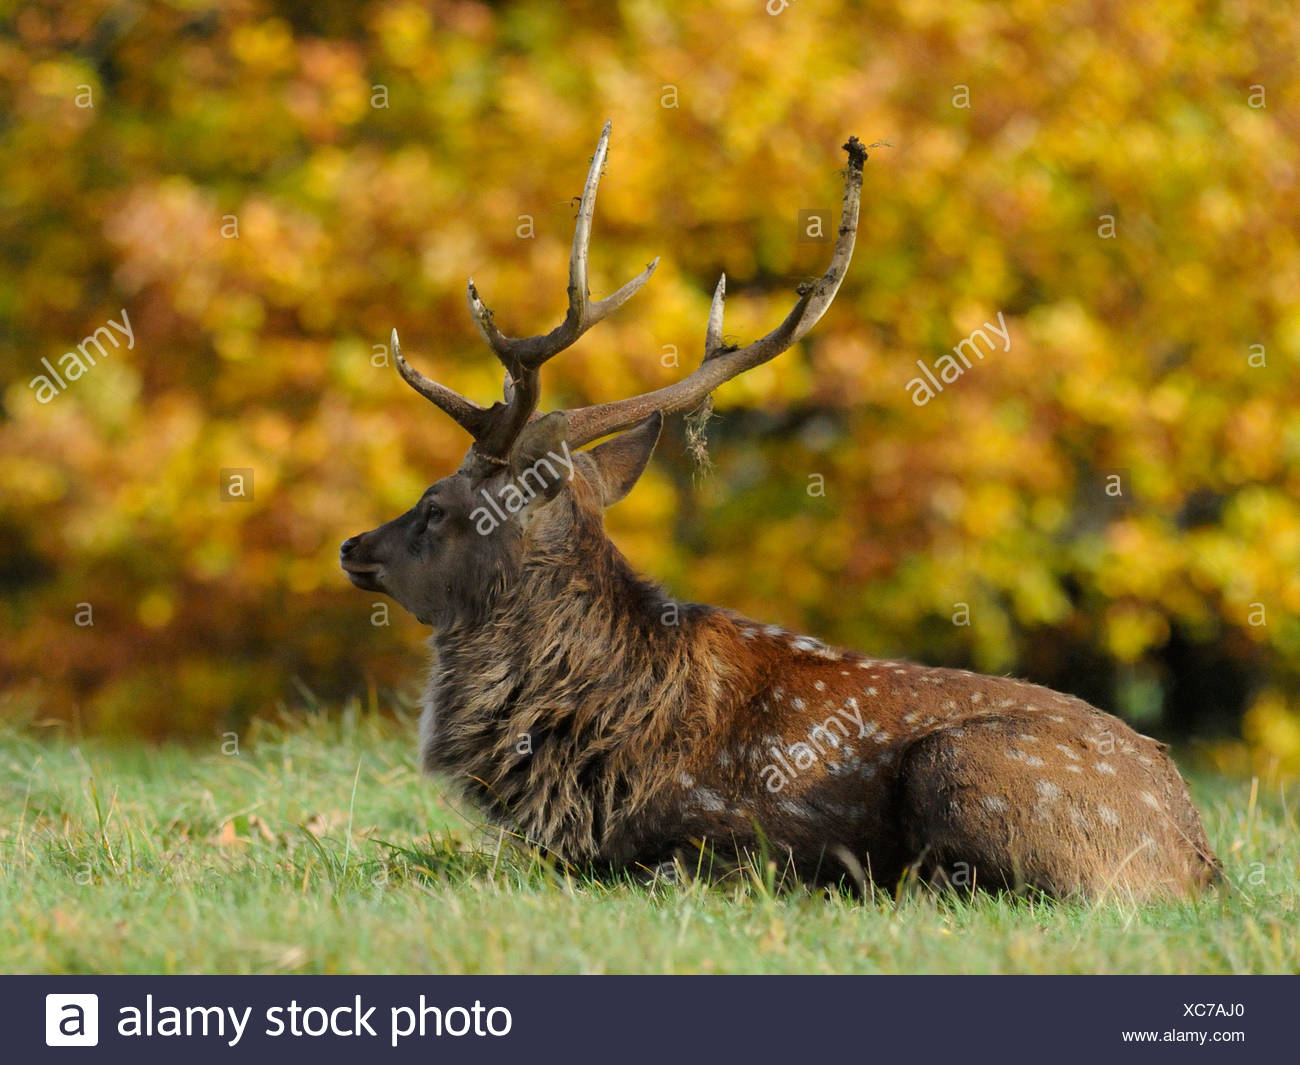 A red deer relaxing against Autumn foliage. - Stock Image